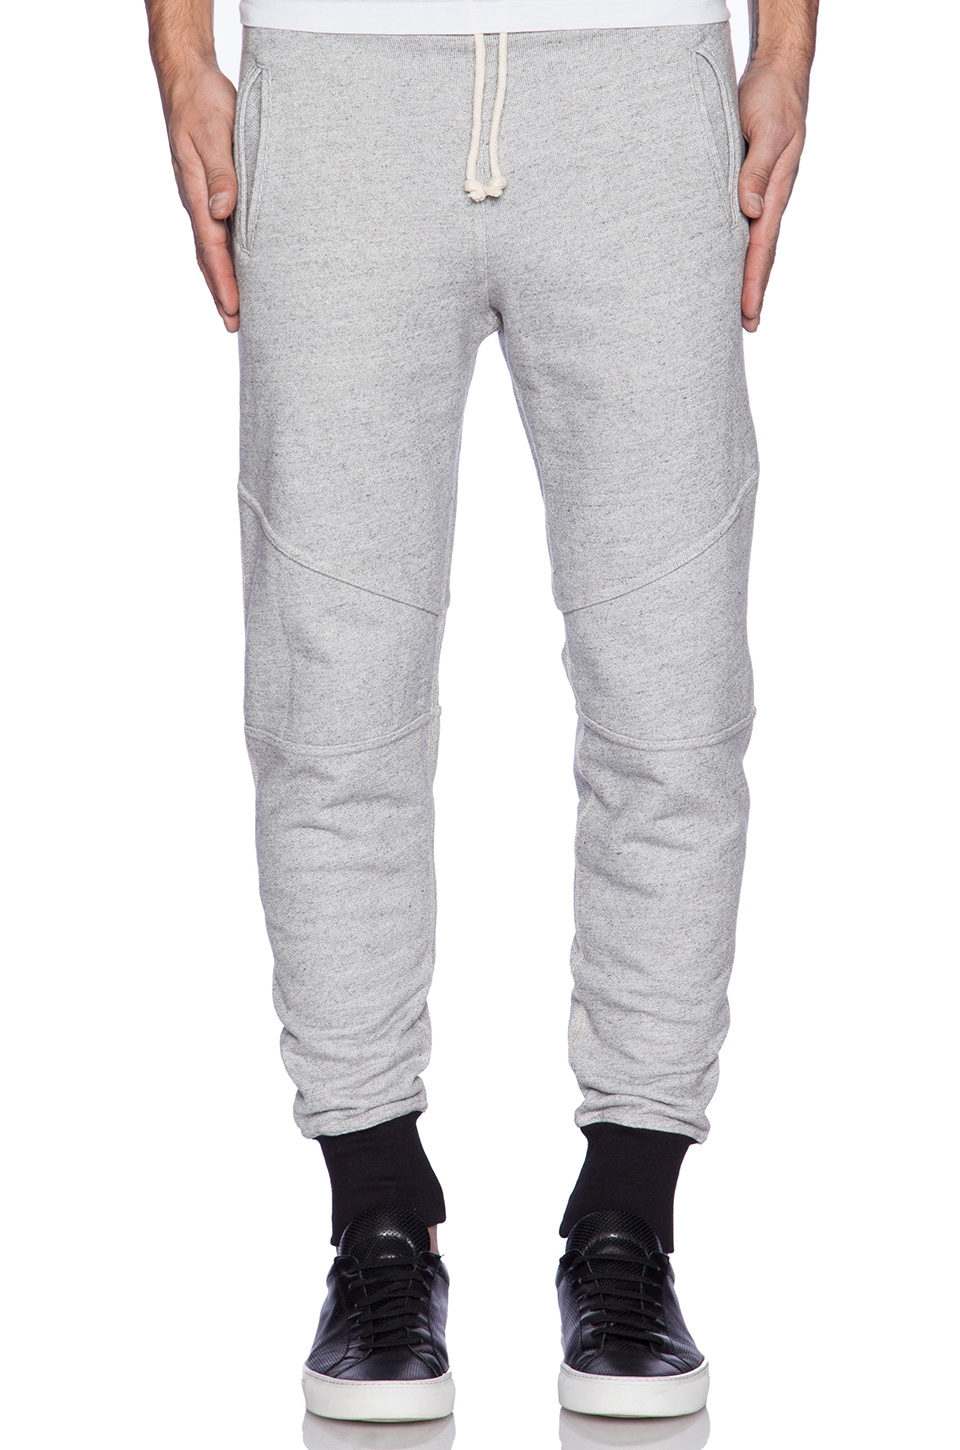 JOHN ELLIOTT Escobar Sweatpant in Grey Duo 2